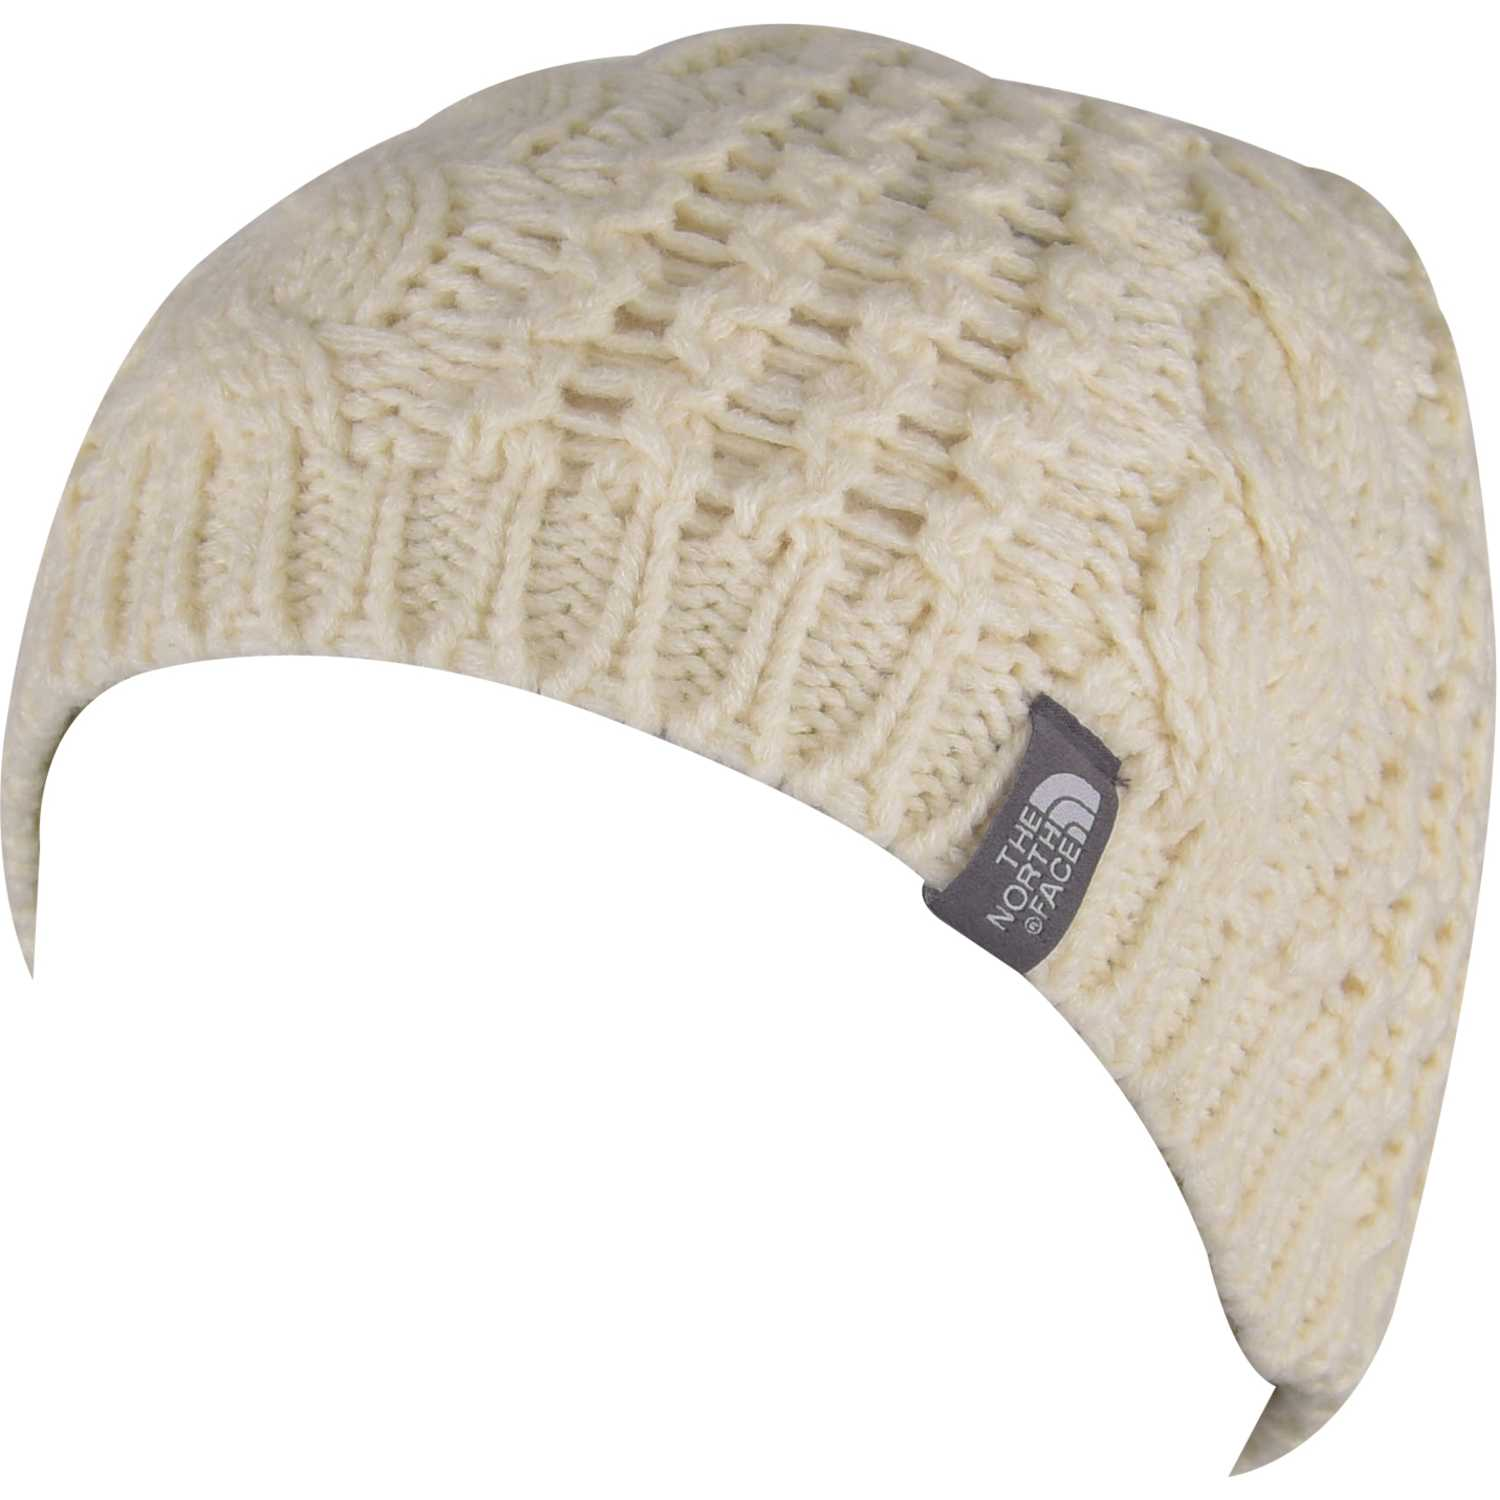 The North Face cable minna beanie Beige Chullos y Gorros